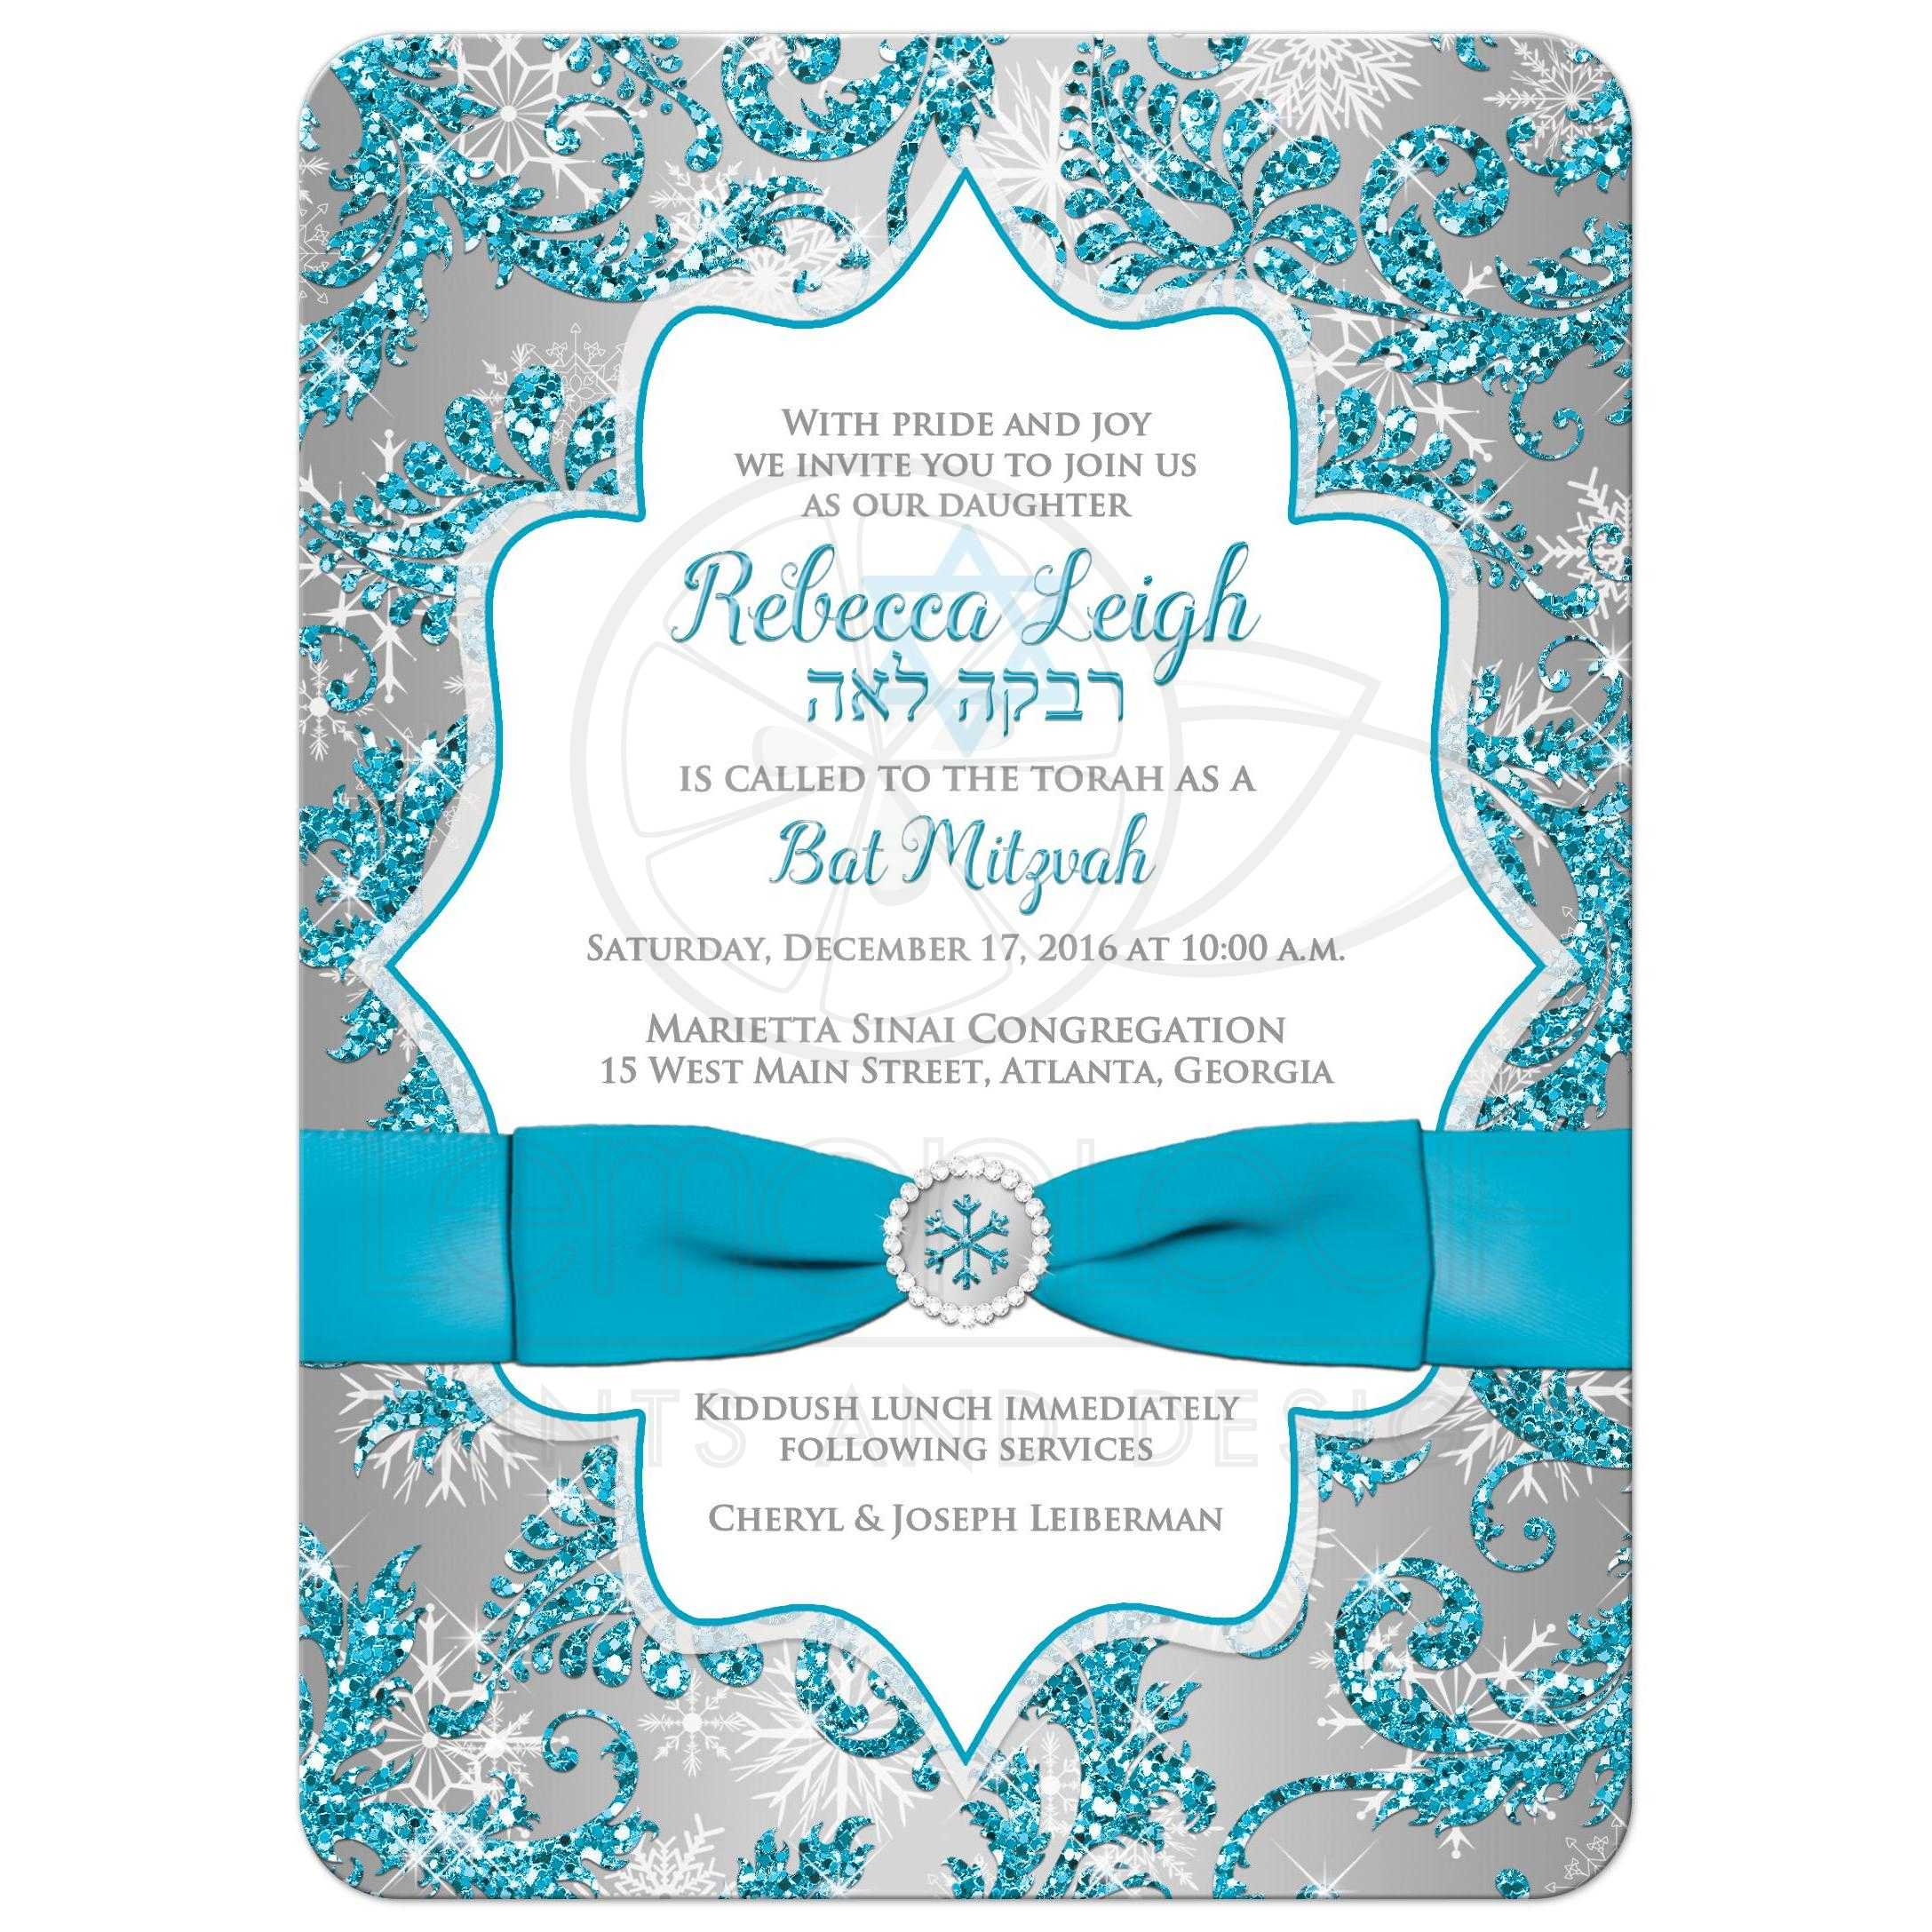 Invitation For Baby Christening with adorable invitations example